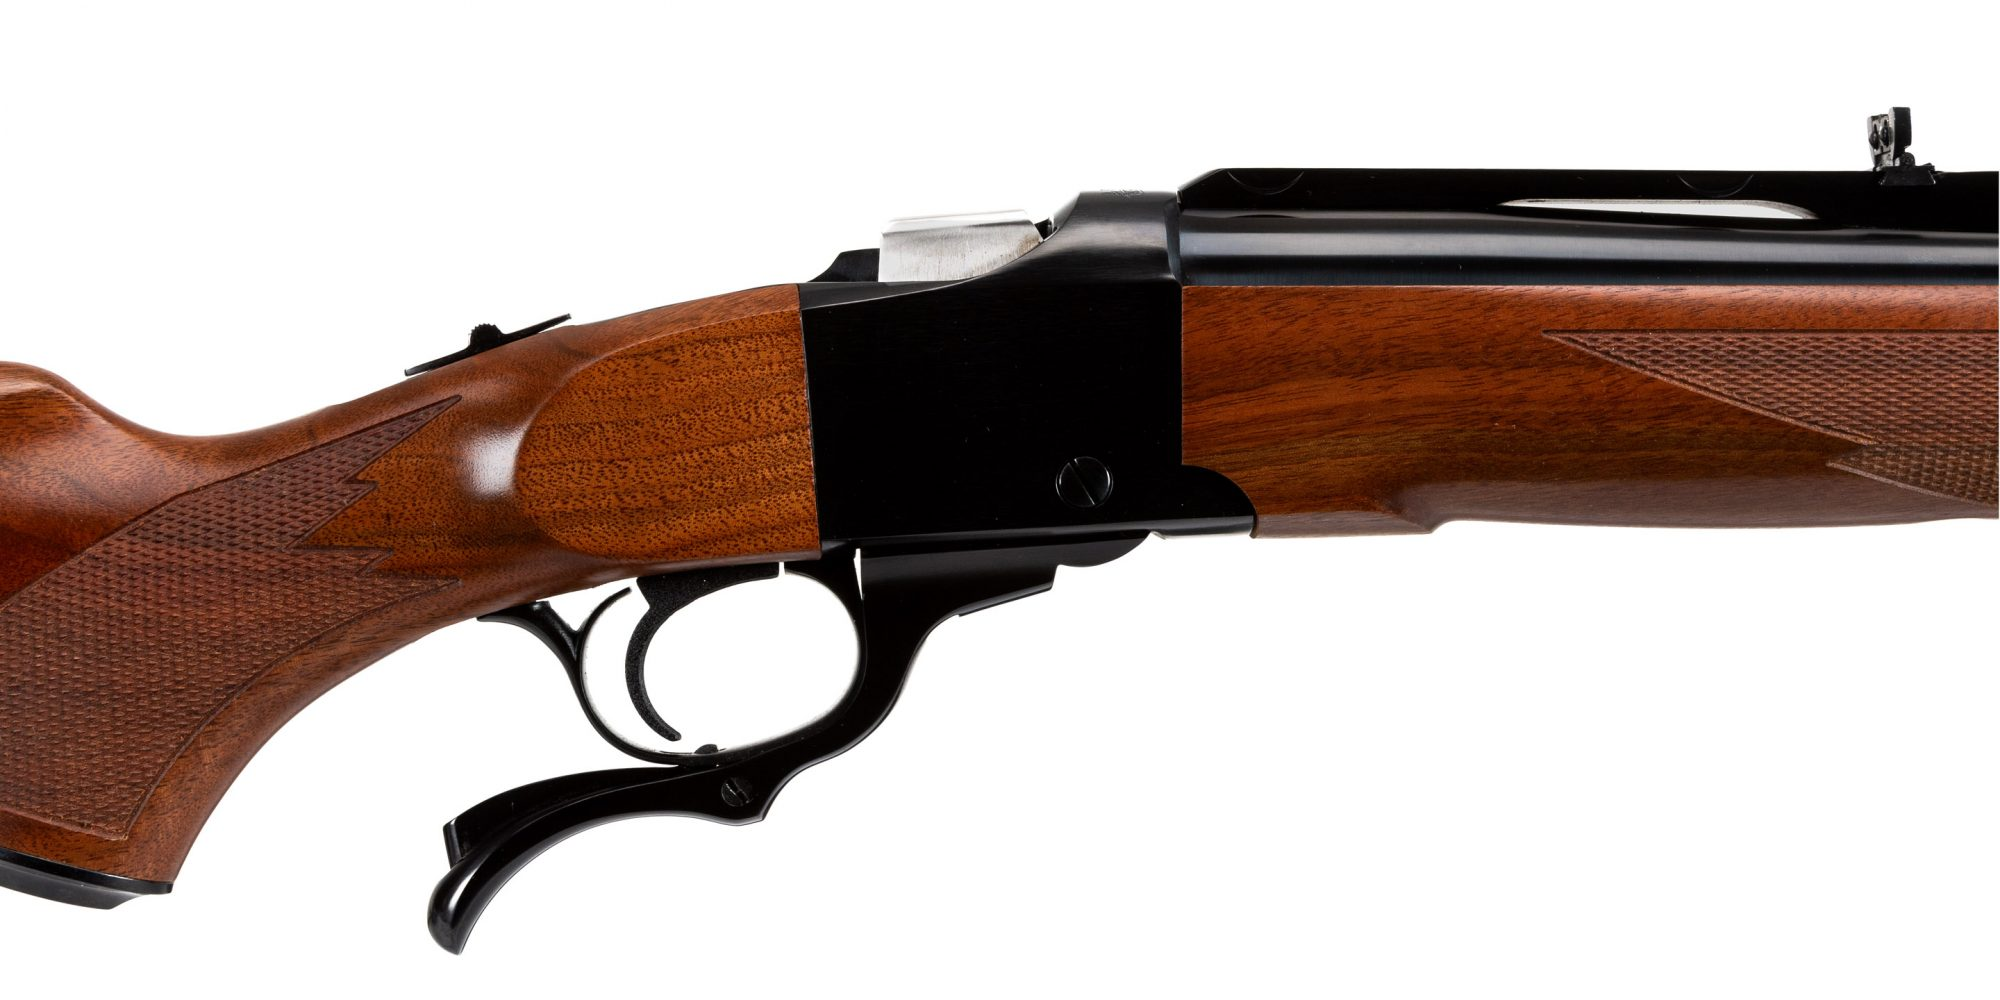 Photo of a pre-owned Ruger No. 1 single shot rifle chambered in .475 Turnbull